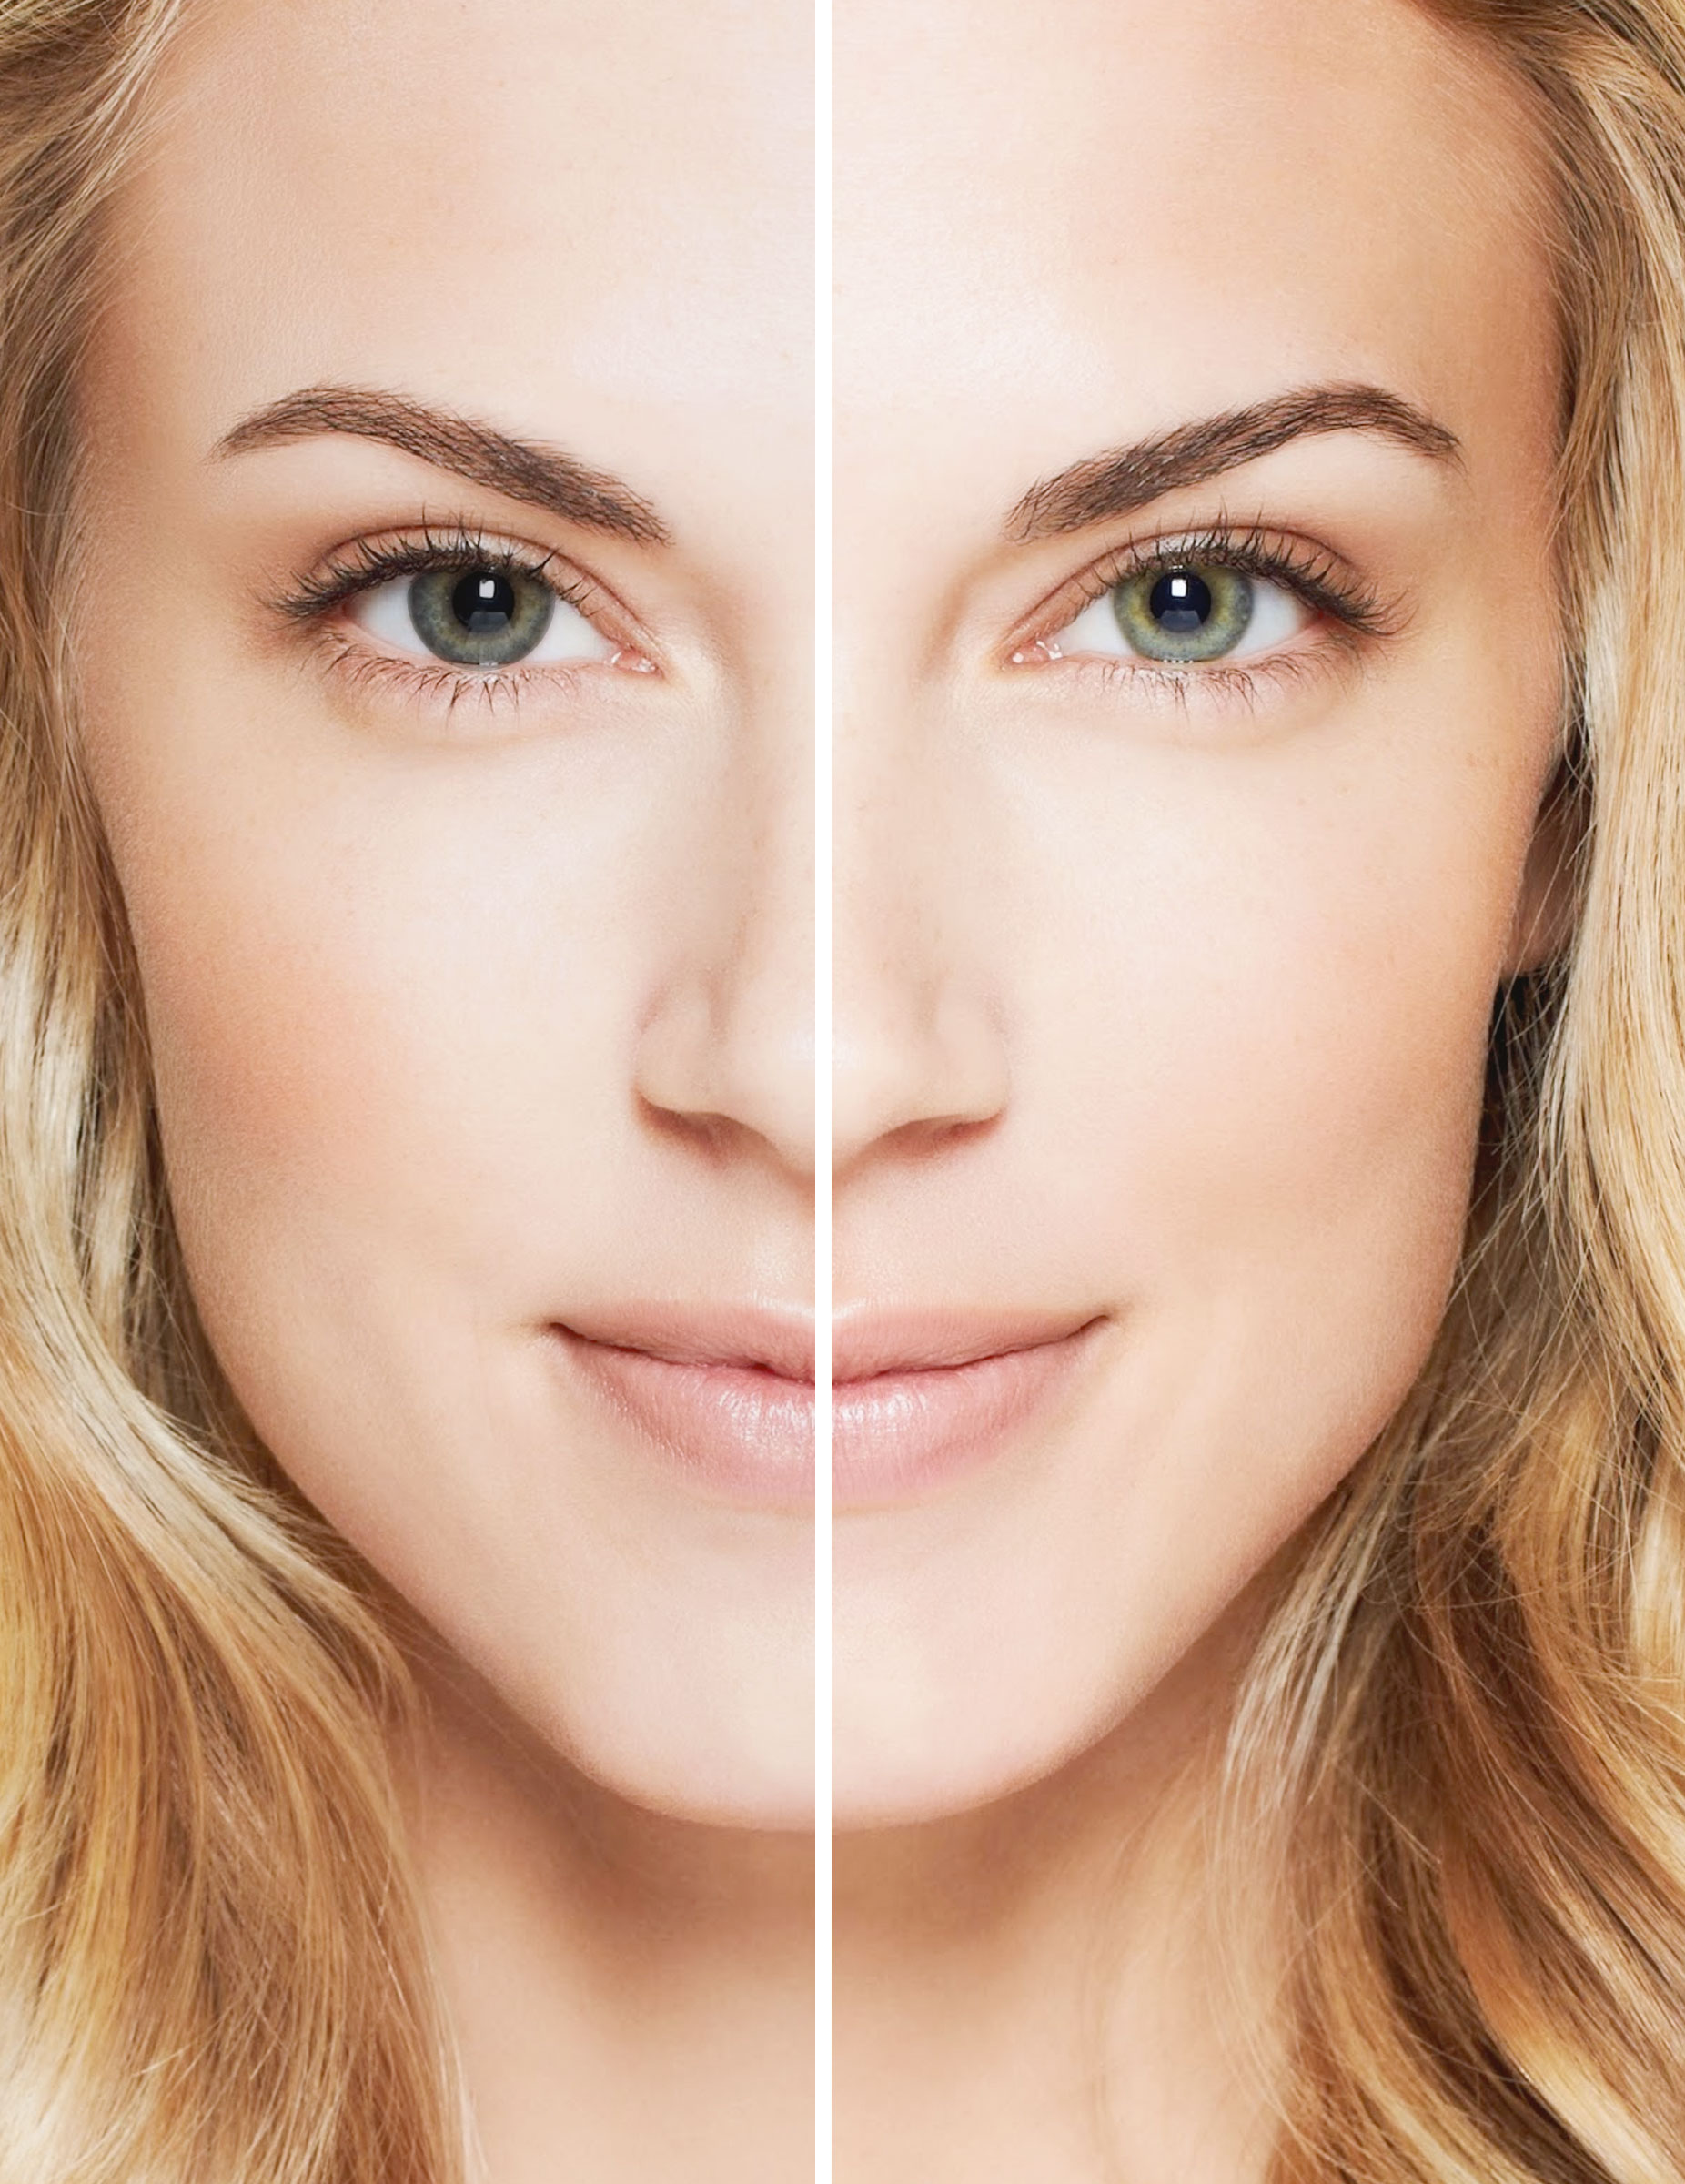 Acuvue Define Contact Lenses Before and After